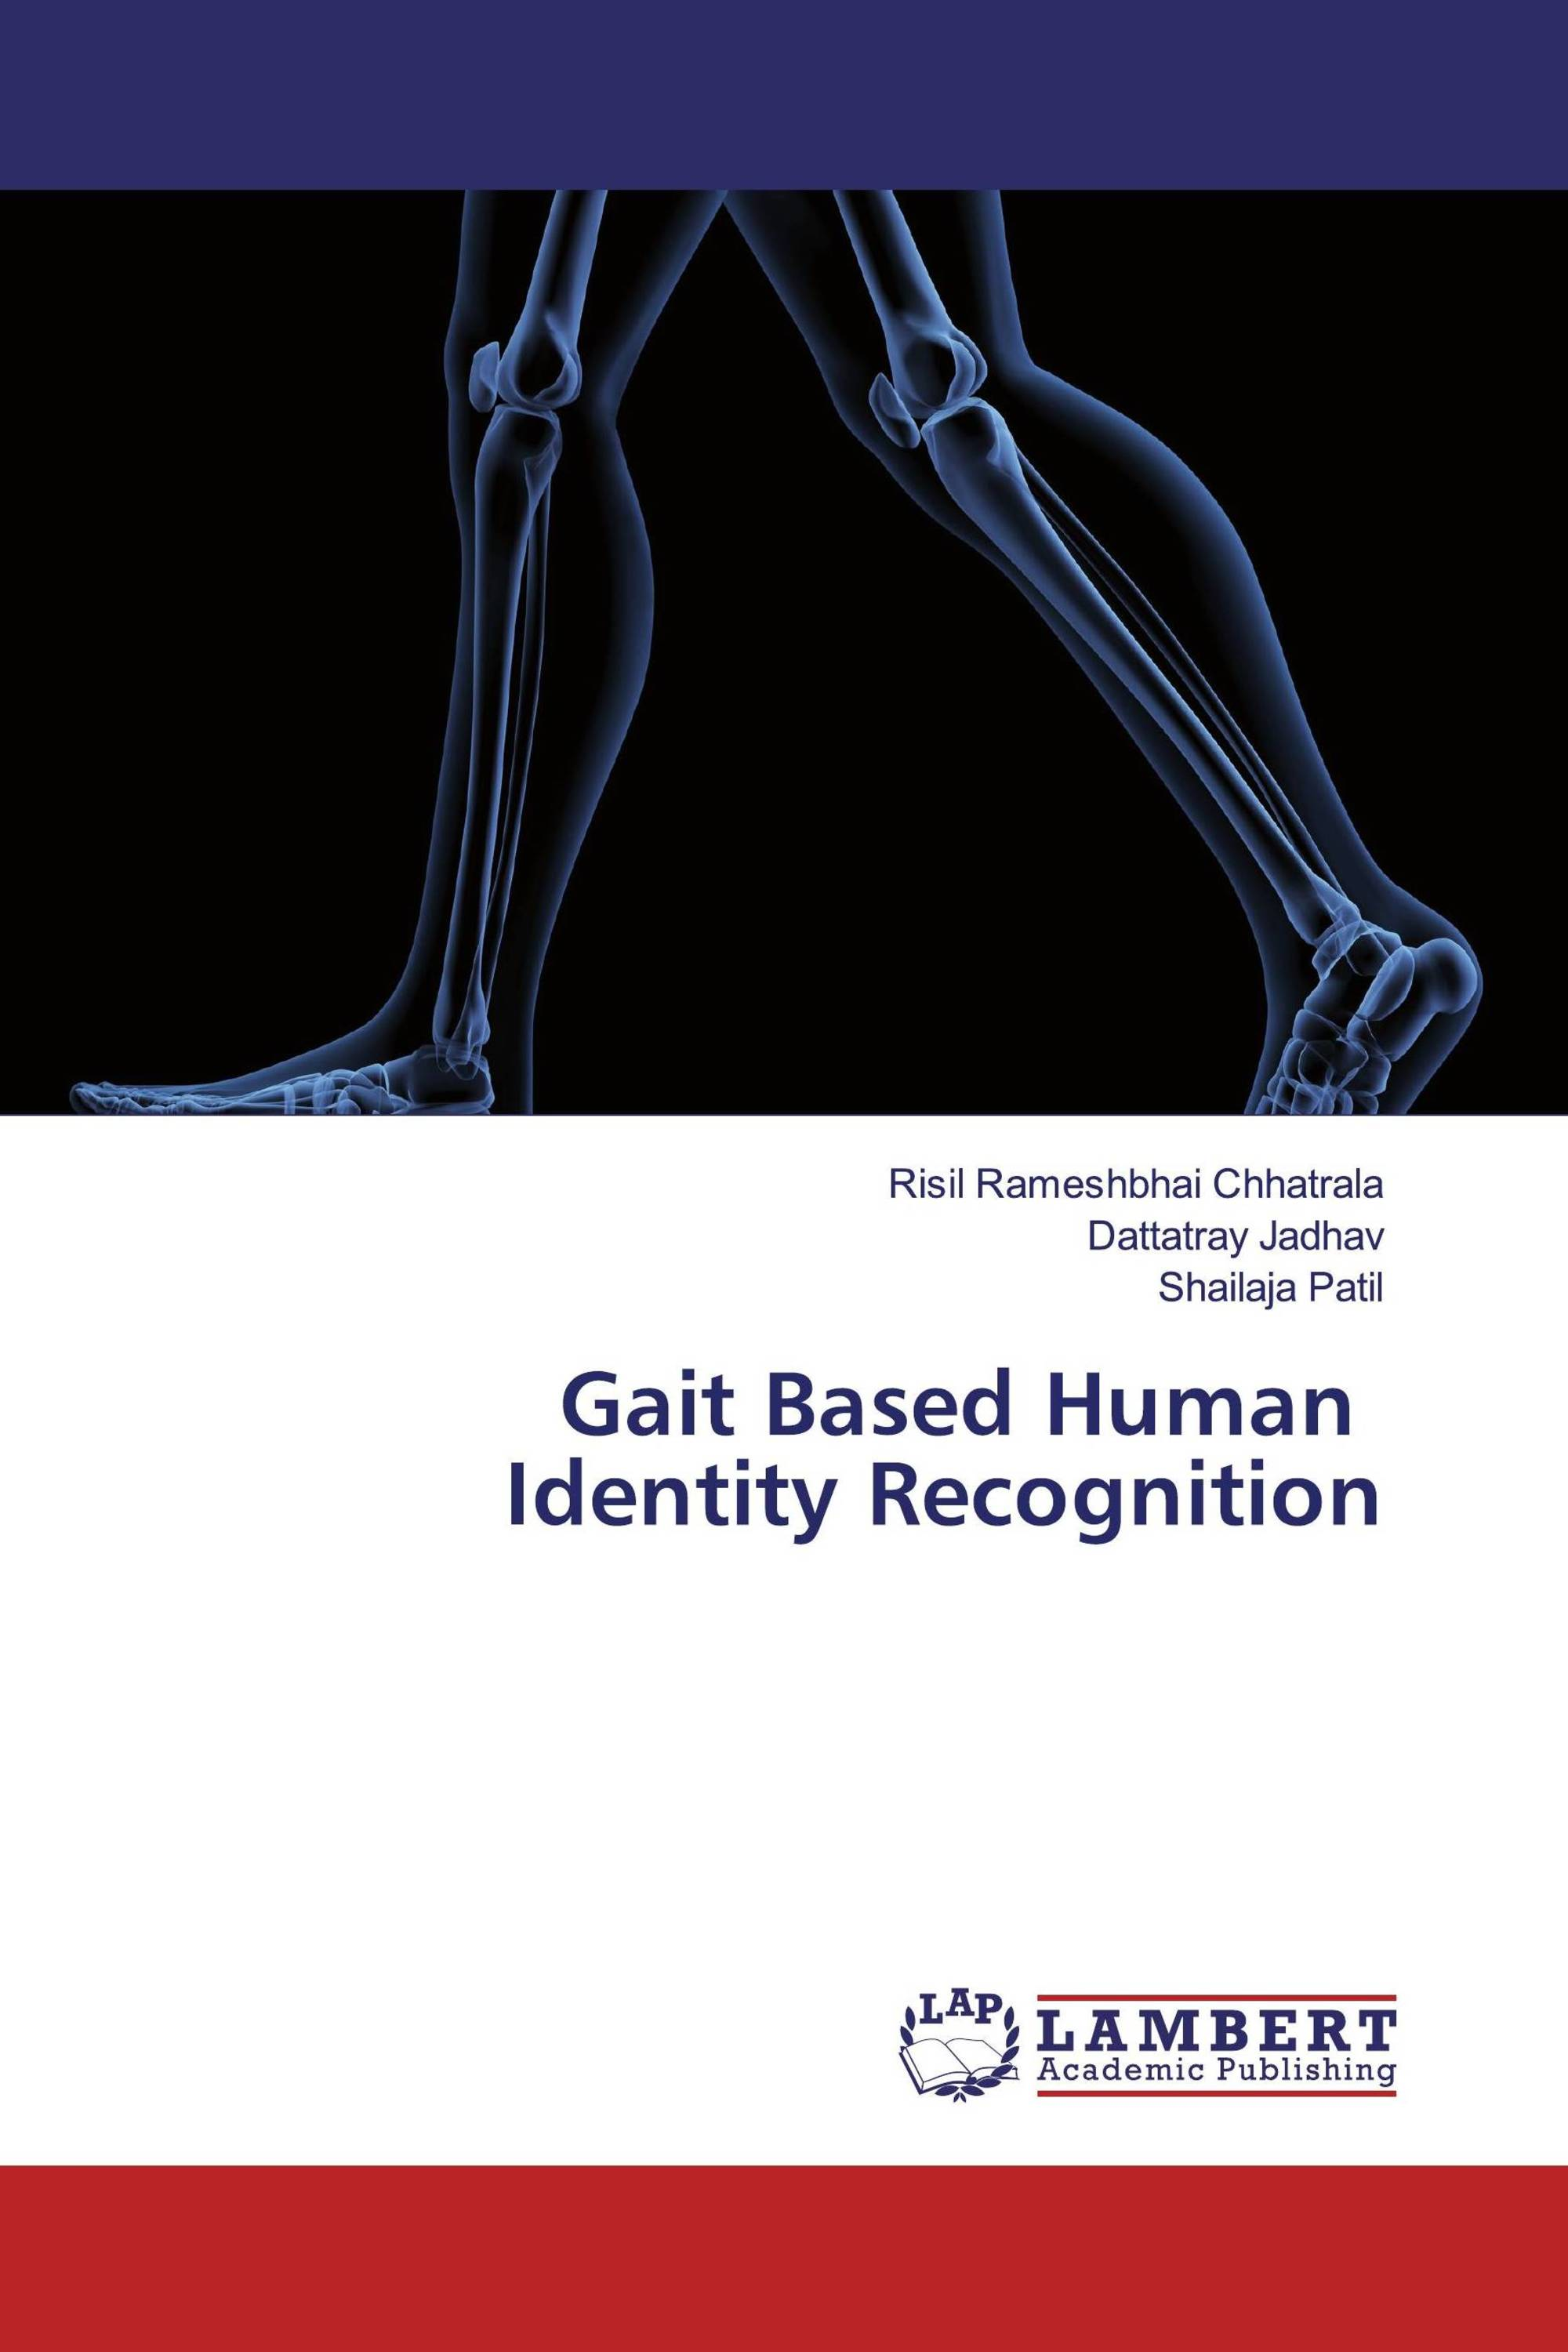 Gait Based Human Identity Recognition